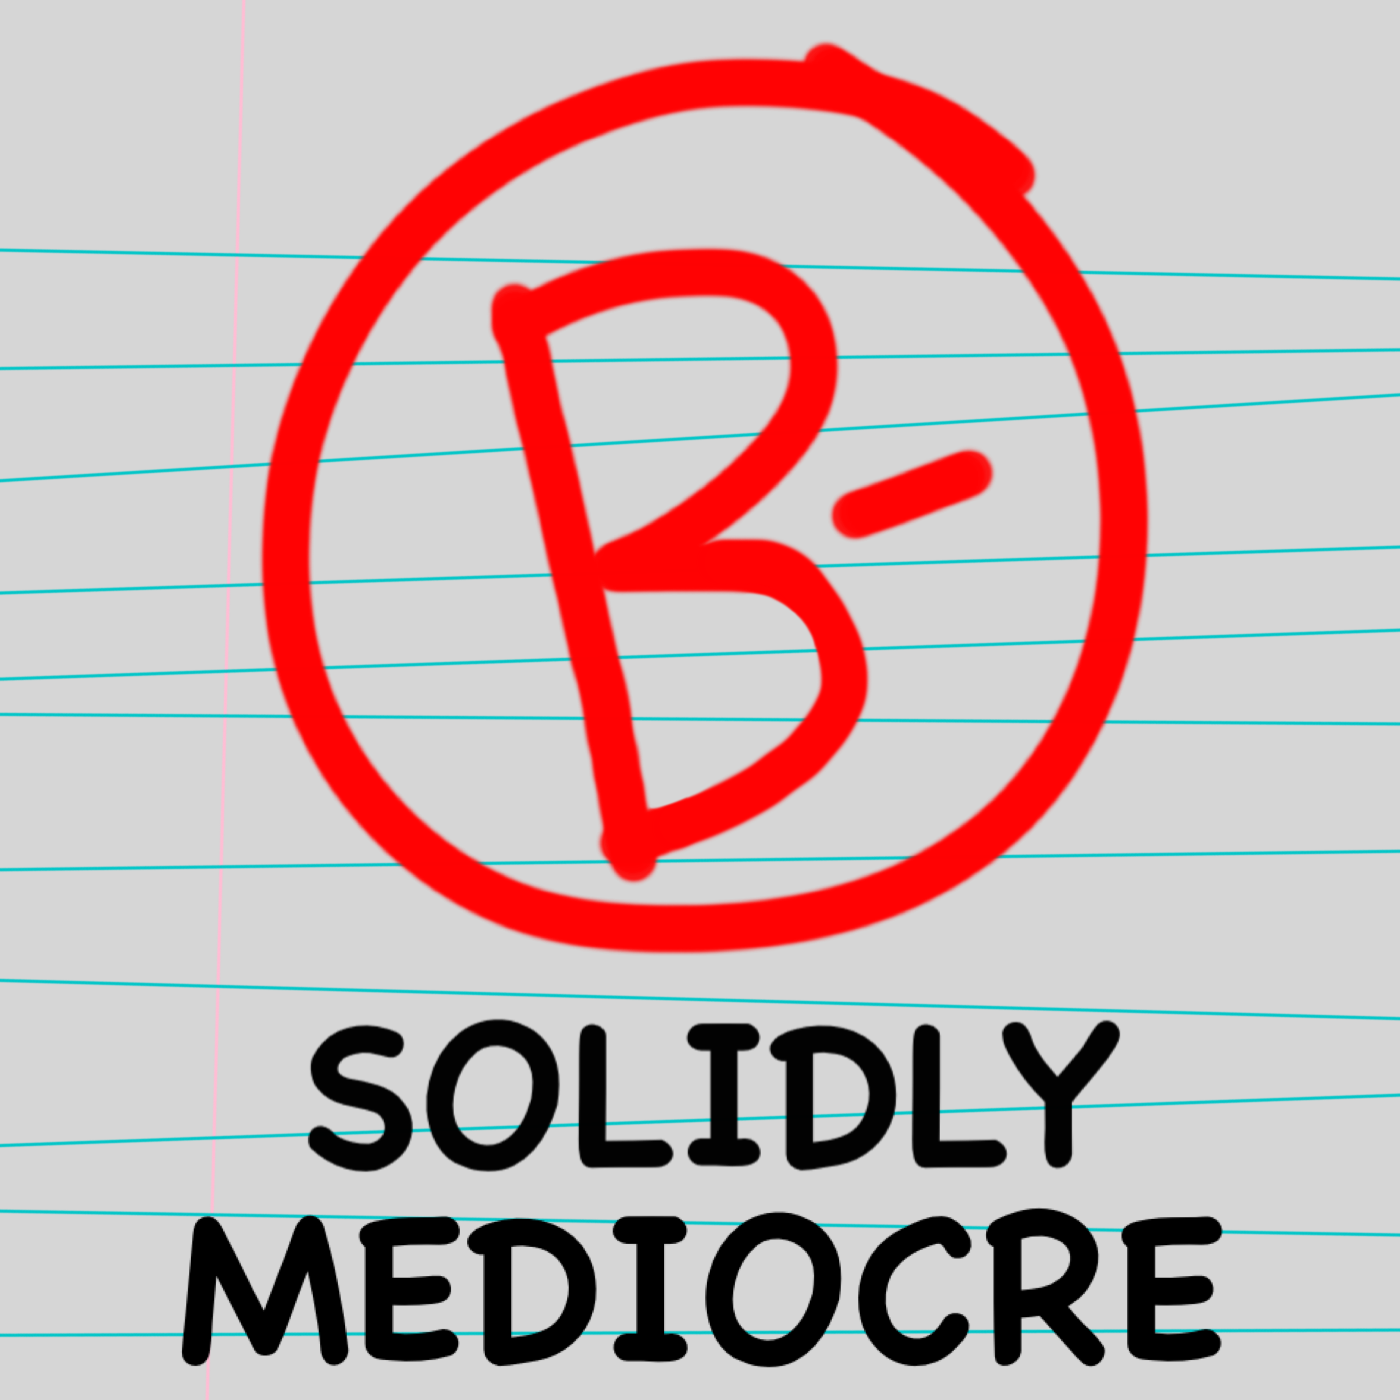 Solidly Mediocre - Solidly Mediocre was a podcast about college, mistakes, and becoming an adult. Hosted by me and a rotating cast of friends, Solidly Mediocre was a place for a fun conversation about figuring out adulthood.Find Solidly Mediocre here or in your podcast player of choice.